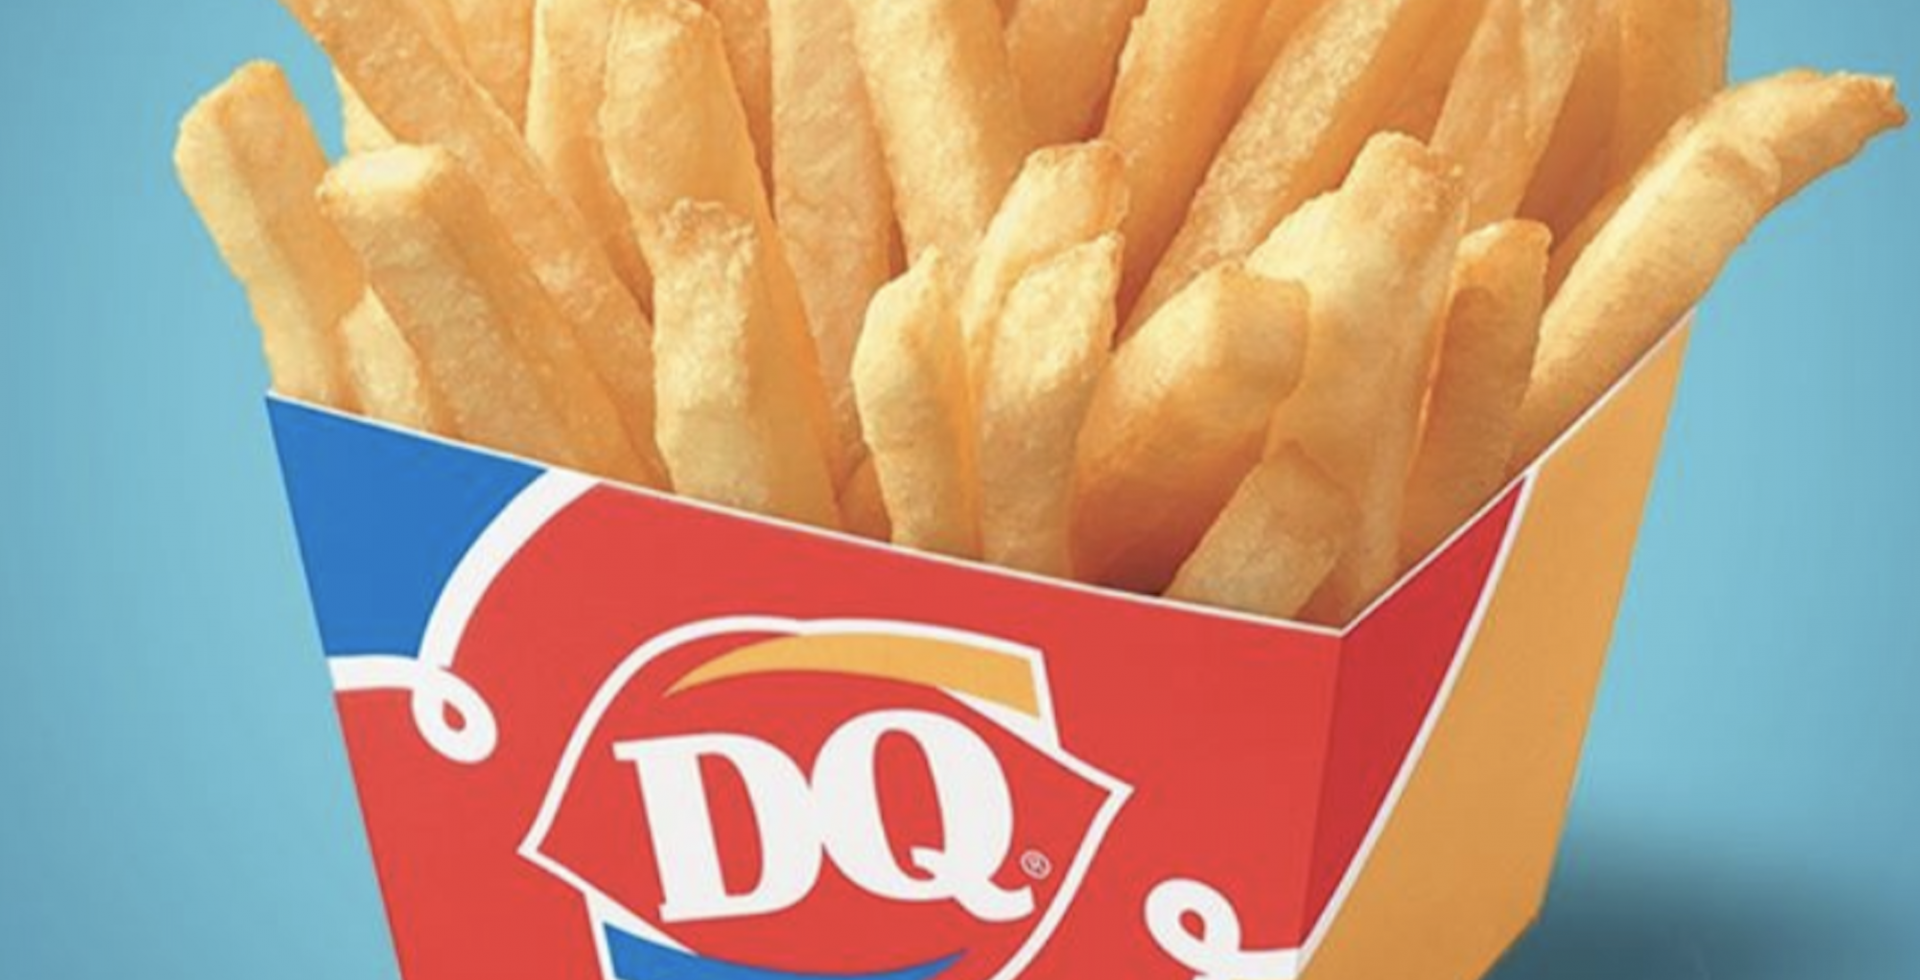 Dairy Queen is offering FREE fries until September